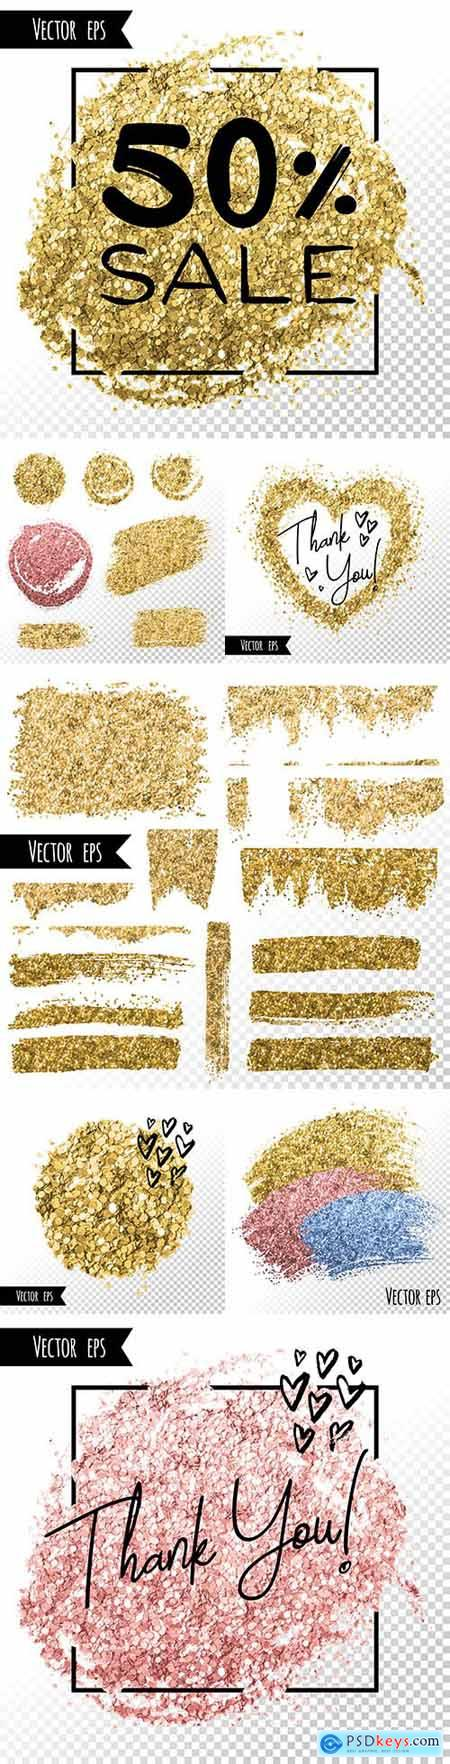 Gold foil gloss brush stroke and background template